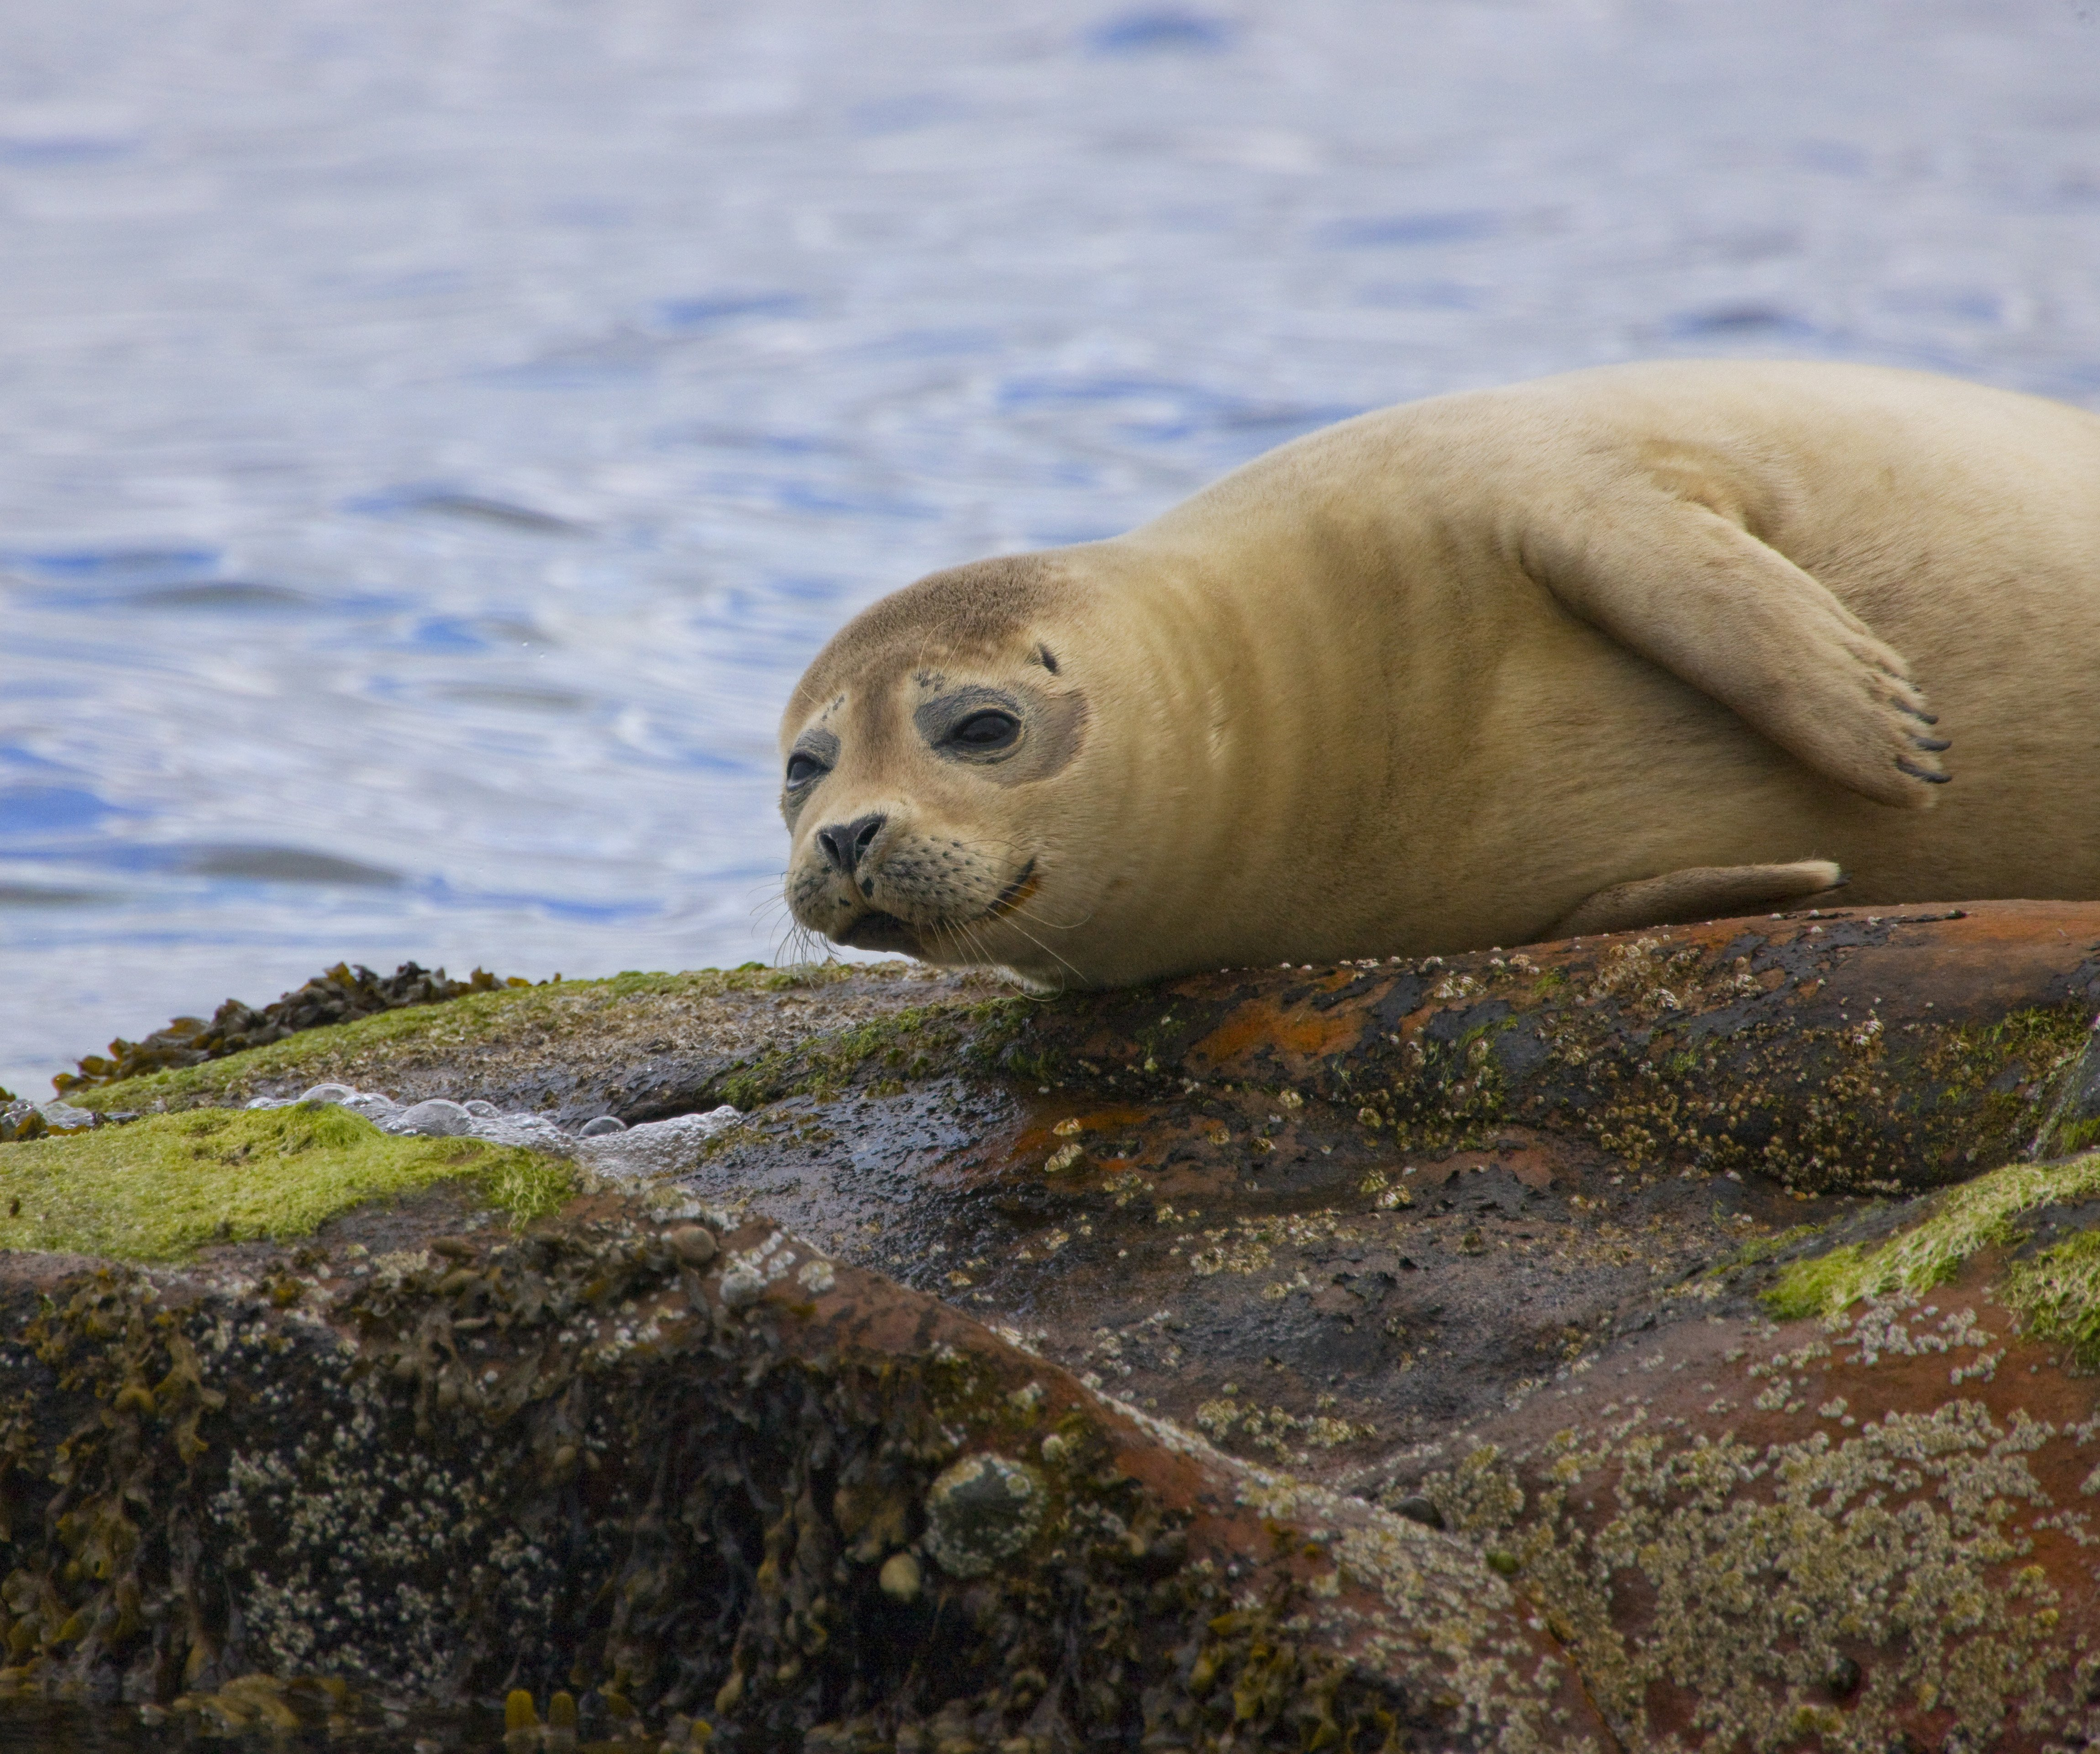 Seals are being shot to protect 'ethical' salmon being sold in UK supermarkets